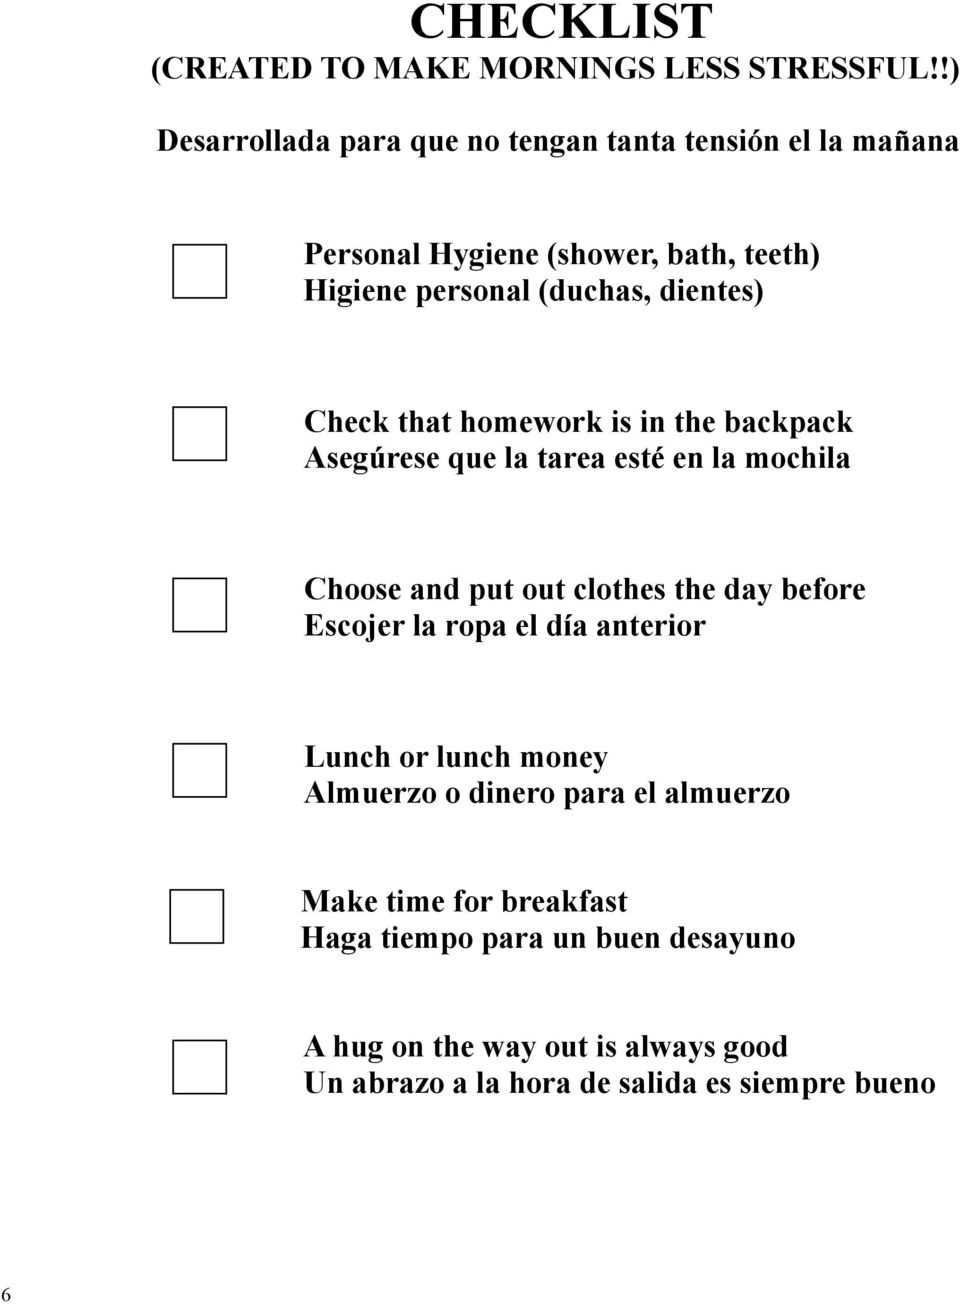 dientes) Check that homework is in the backpack Asegúrese que la tarea esté en la mochila Choose and put out clothes the day before